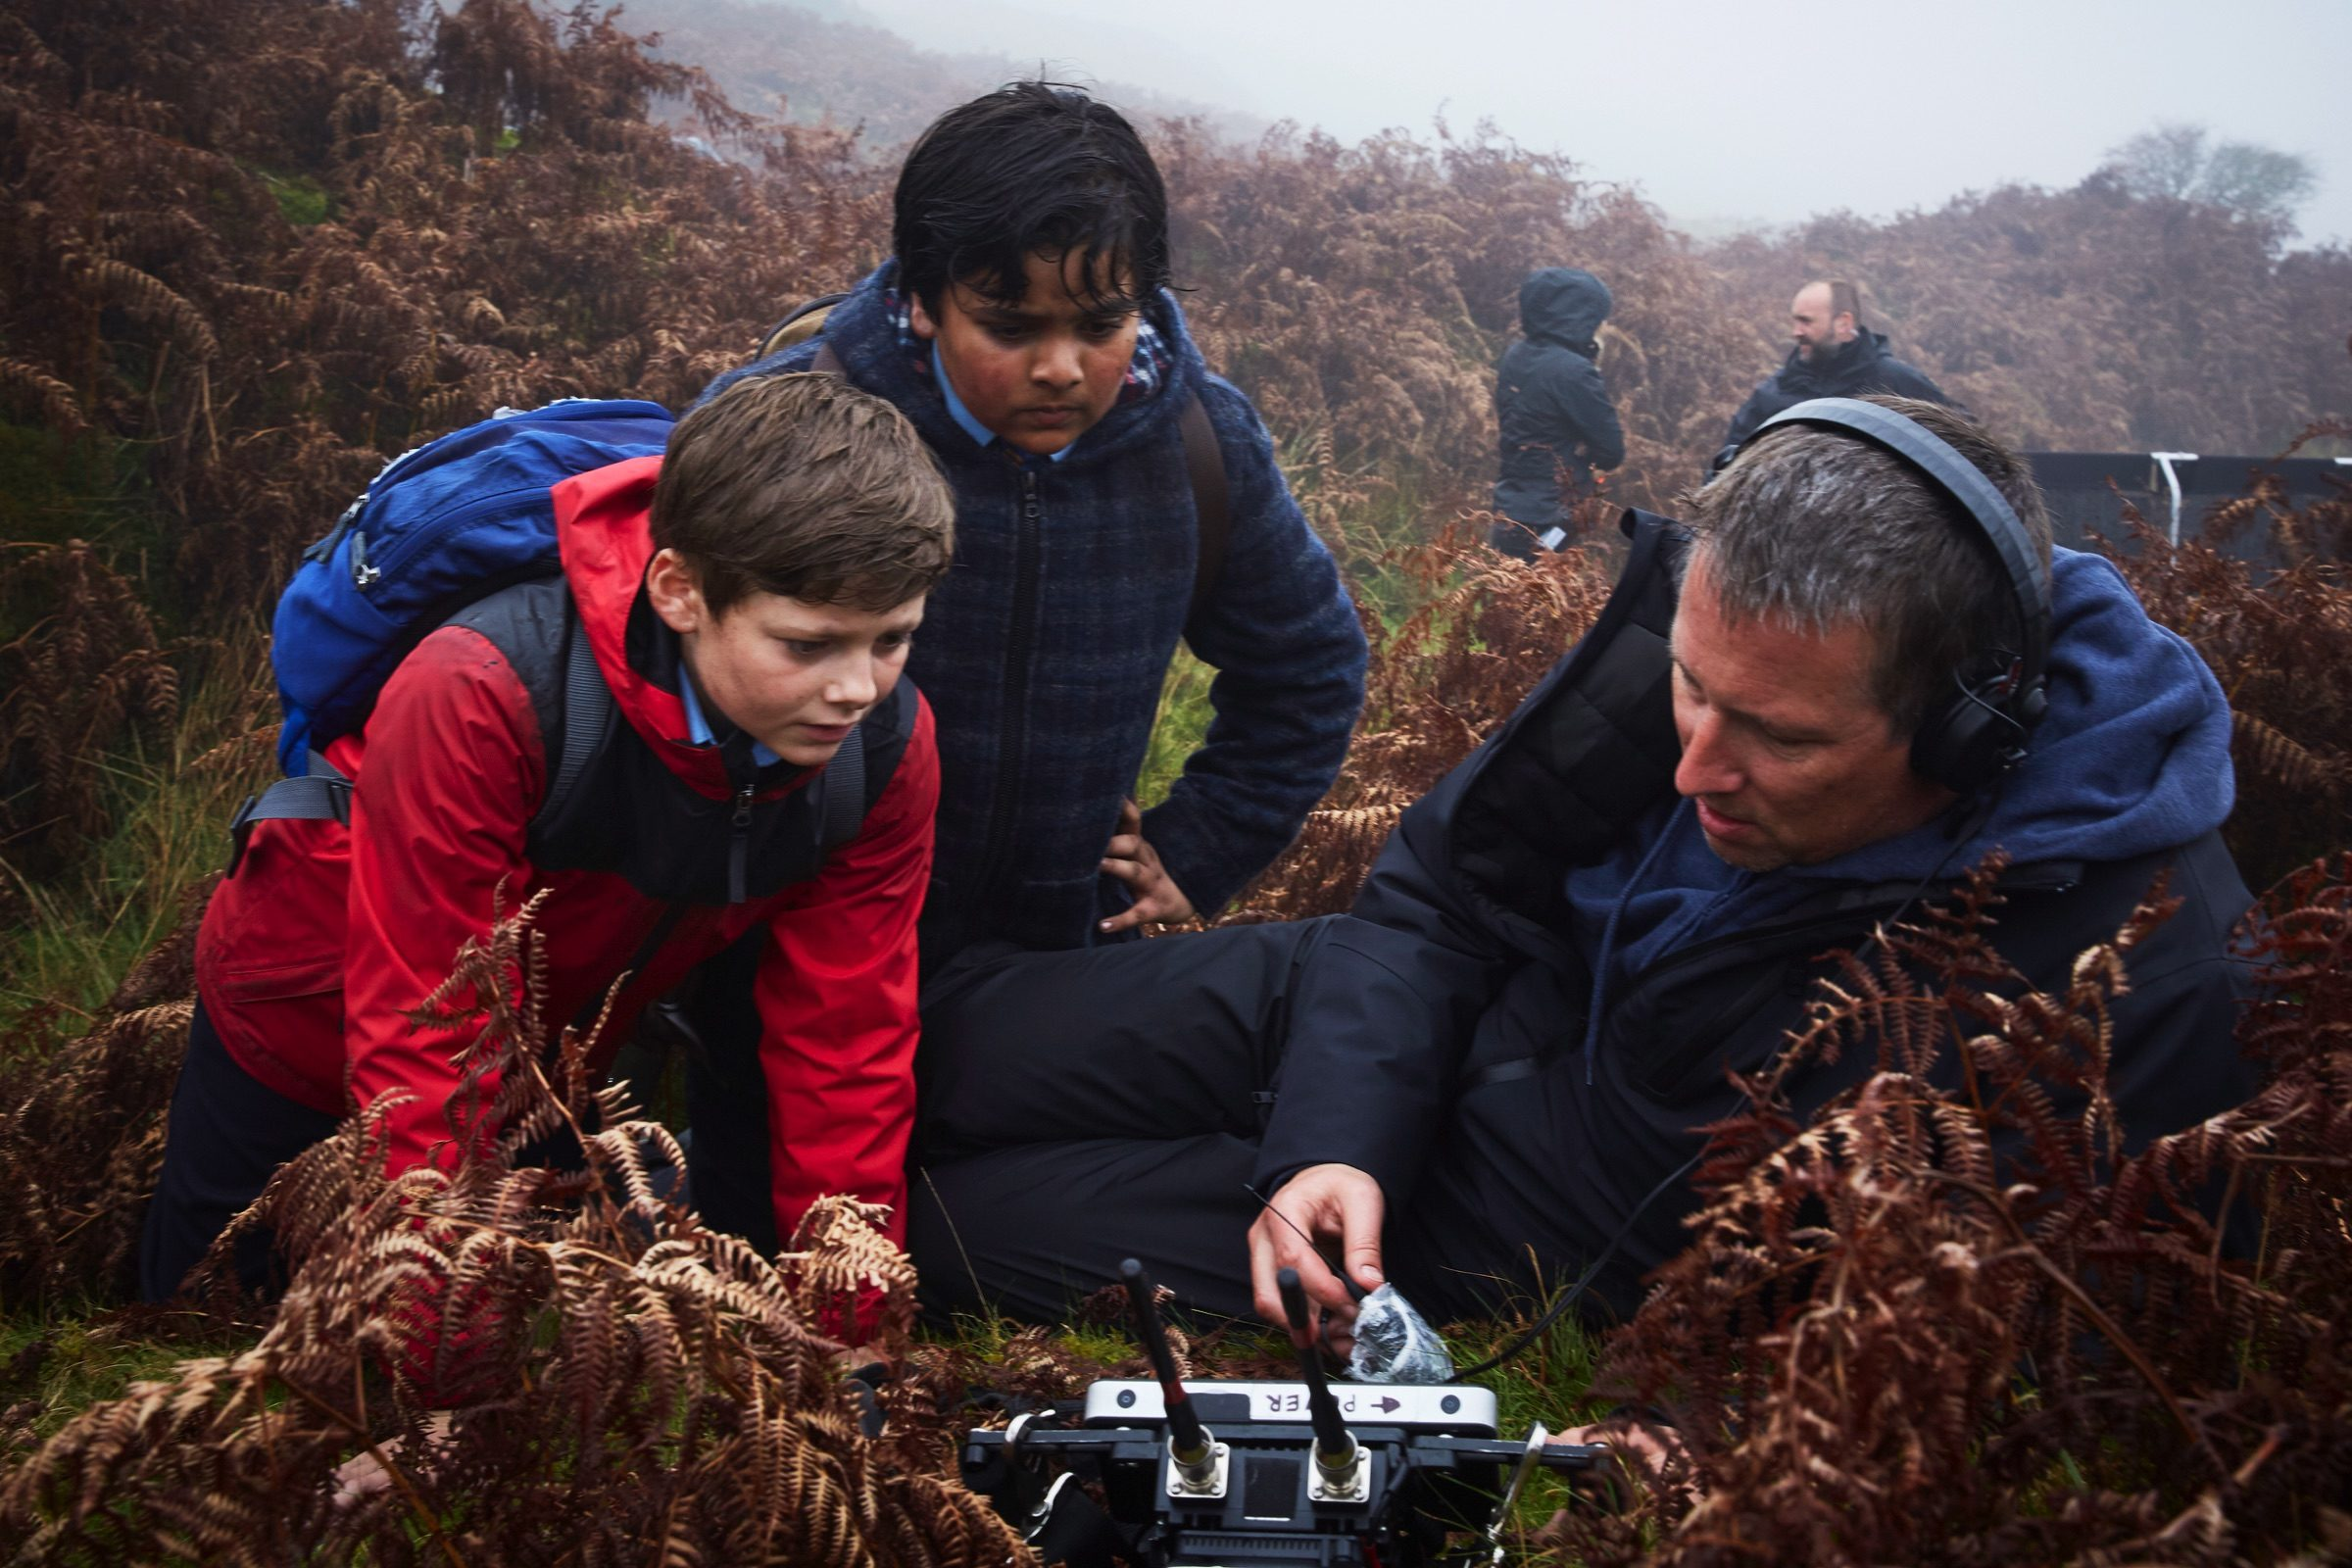 Joe Cornish Fantastic Flix workshop perfect for The Kids Who Would Be Directors